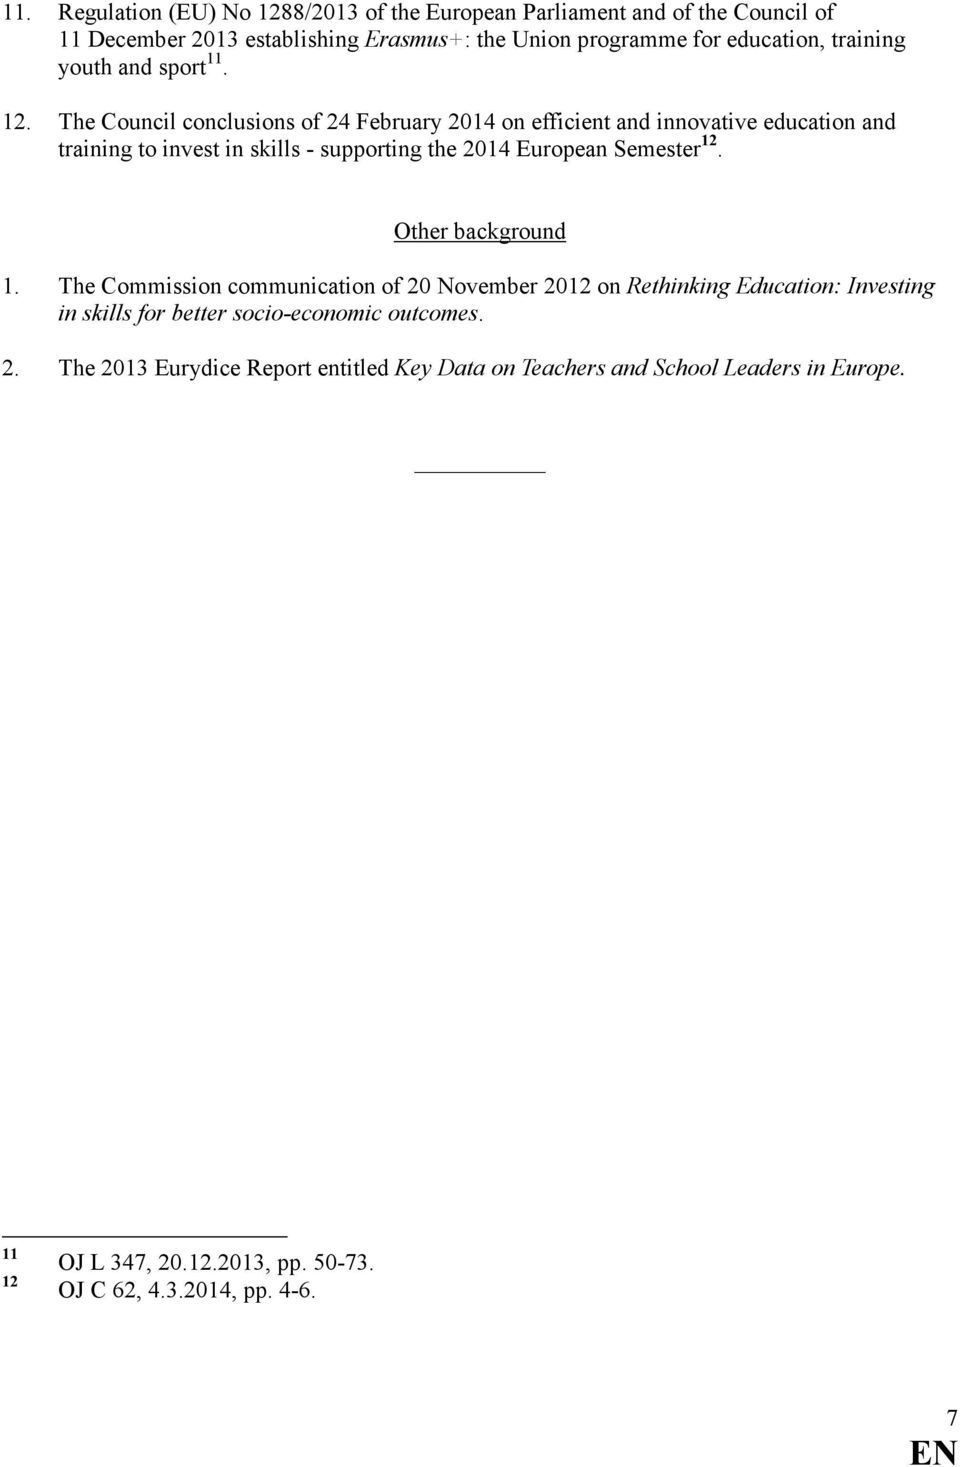 The Council conclusions of 24 February 2014 on efficient and innovative education and training to invest in skills - supporting the 2014 uropean Semester 12.